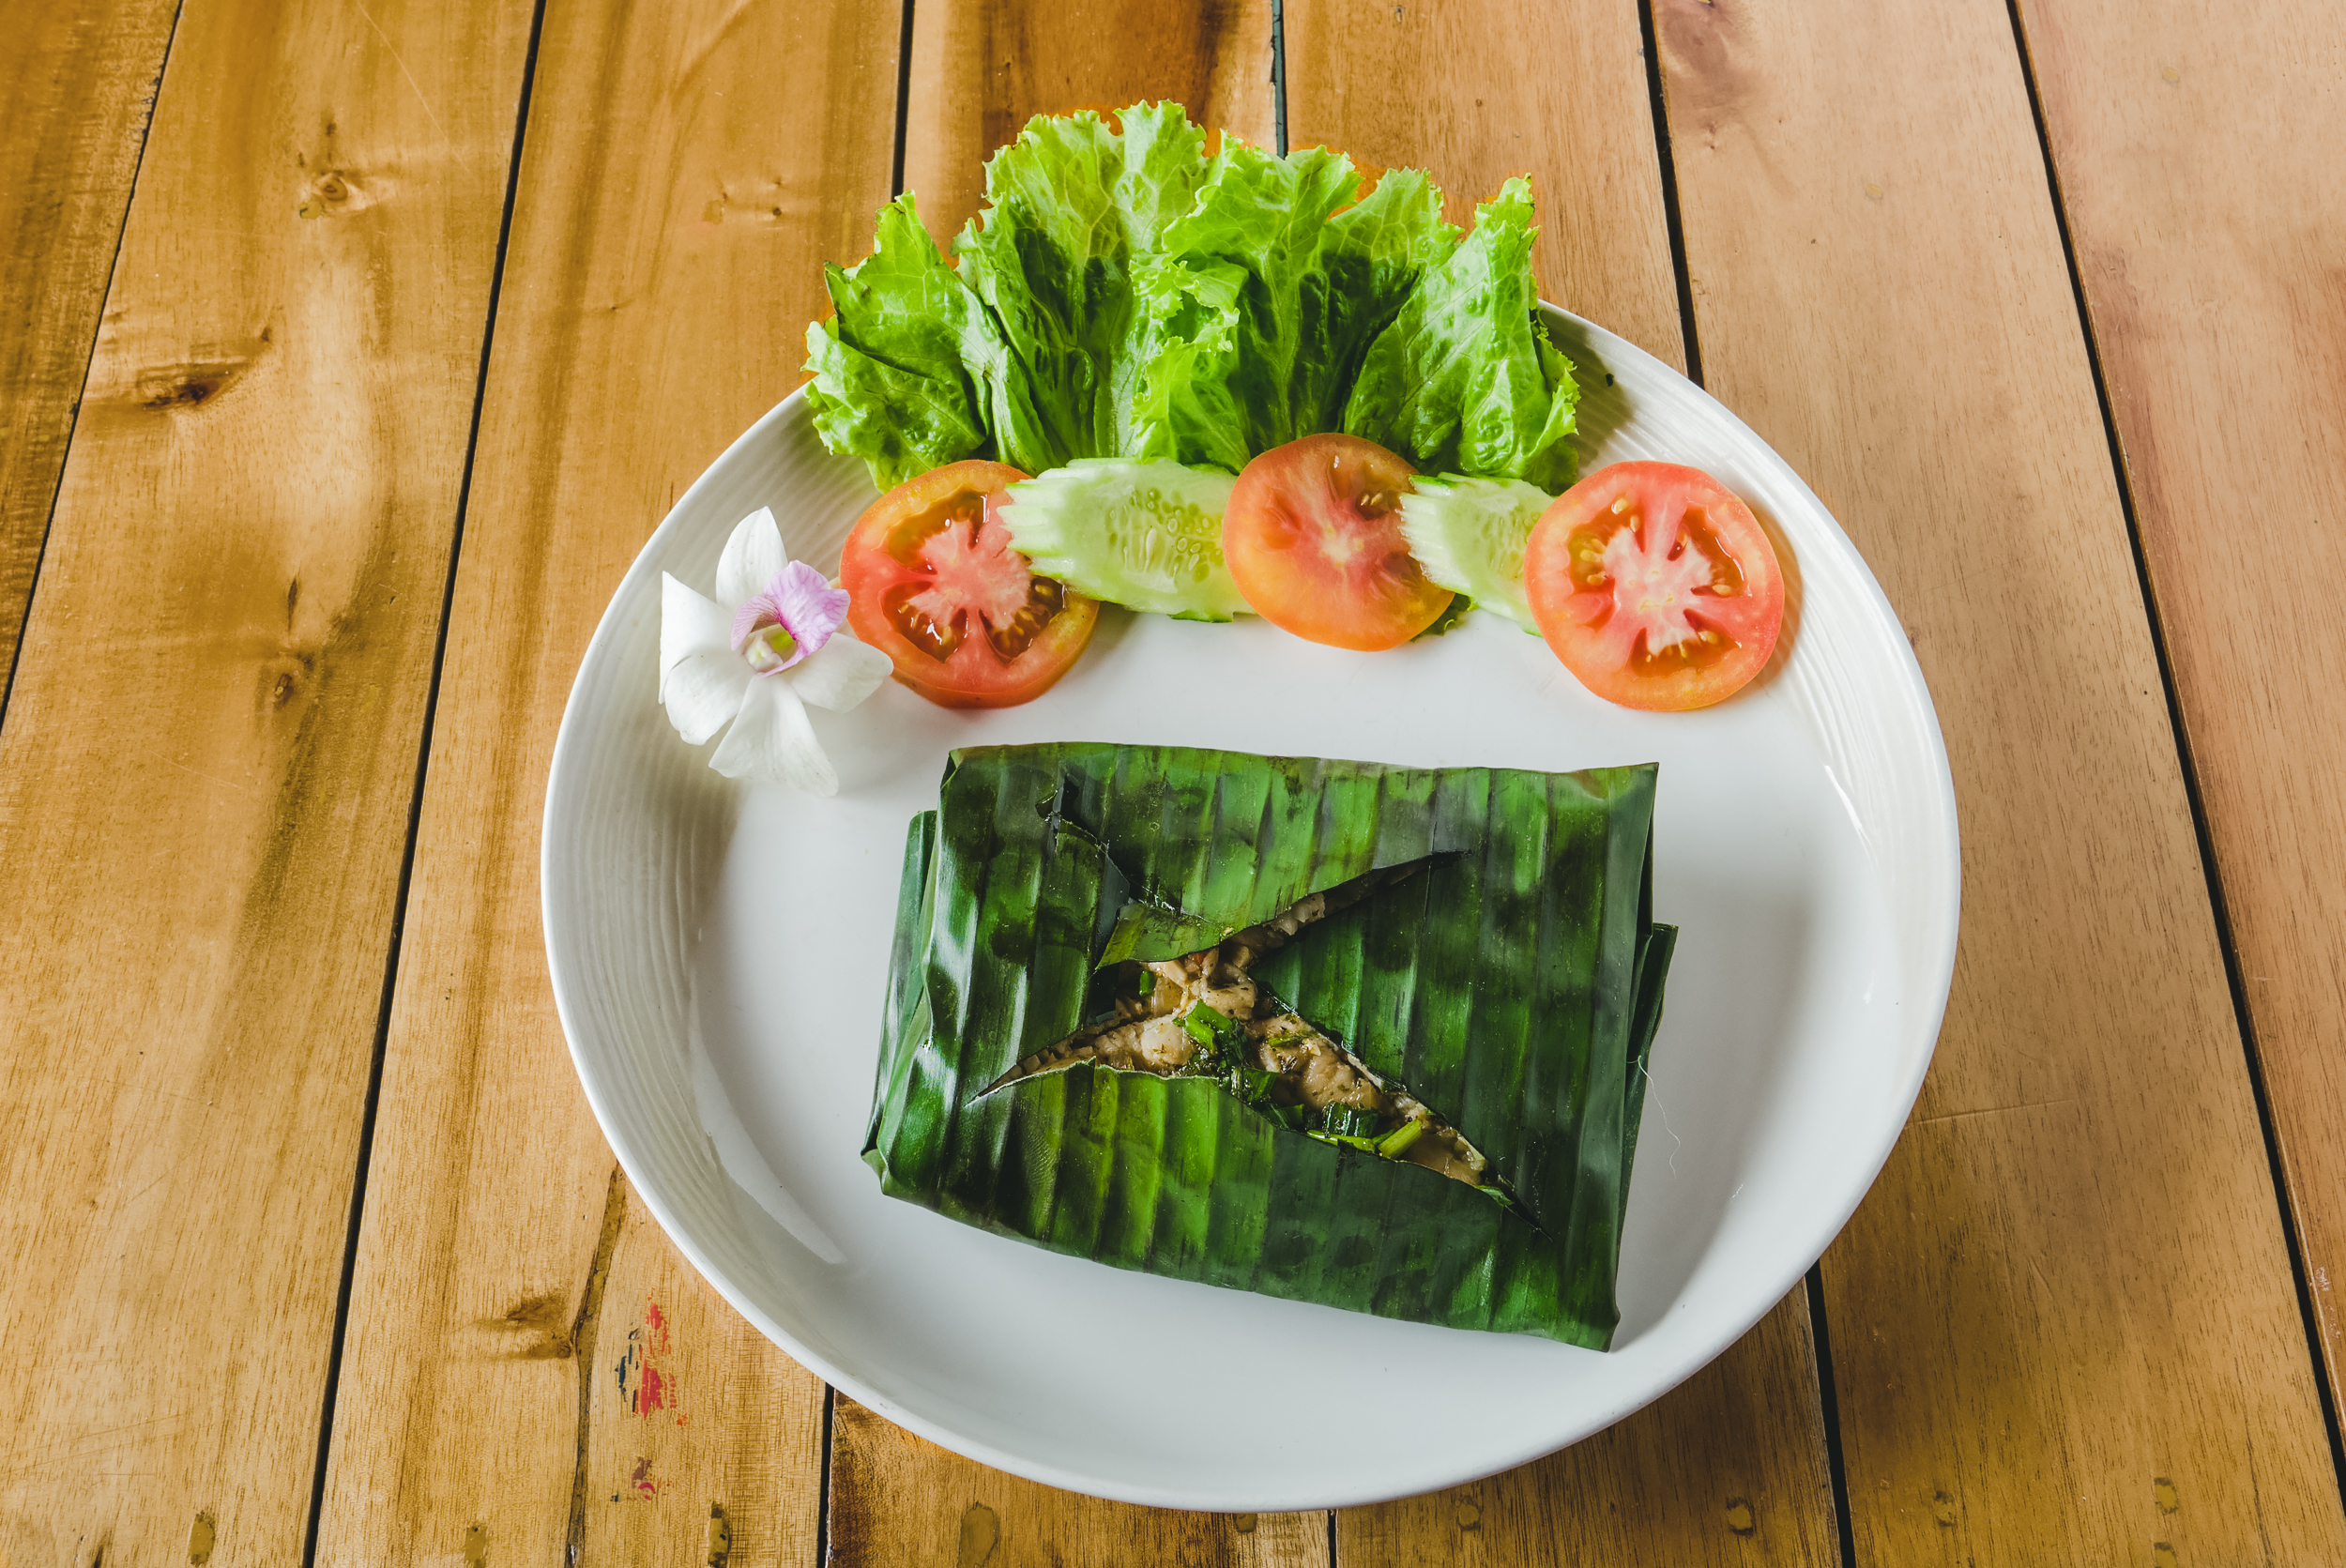 »BARRACUDA IN BANANA LEAF« - People from all over the area come to our restaurant to enjoy our specialty: a fresh barracuda filet steamed in a recently chopped banana leaf with a combination of herbs and spices. Try it yourself and be prepared to order it not only once.